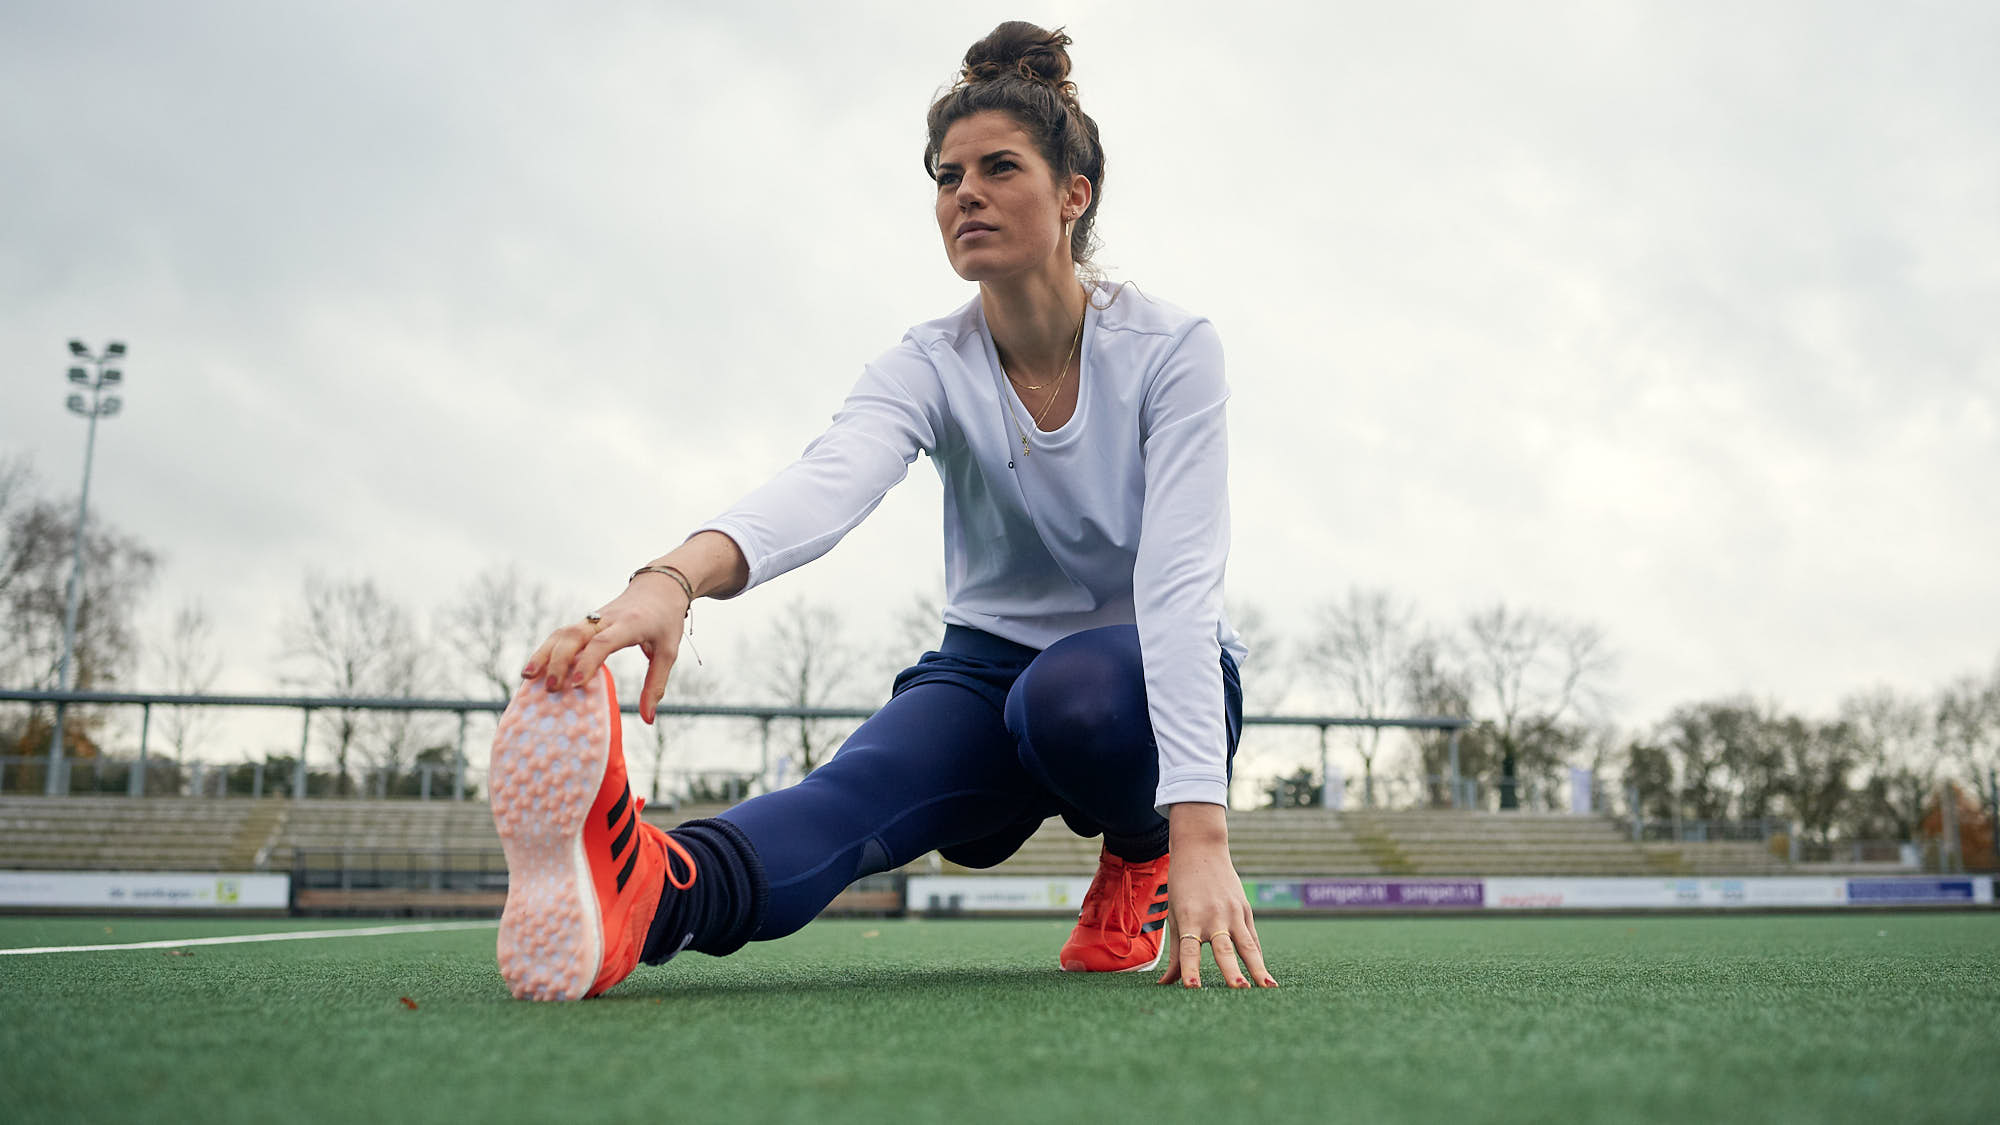 Maxime Kerstholt stretching on a hockey pitch